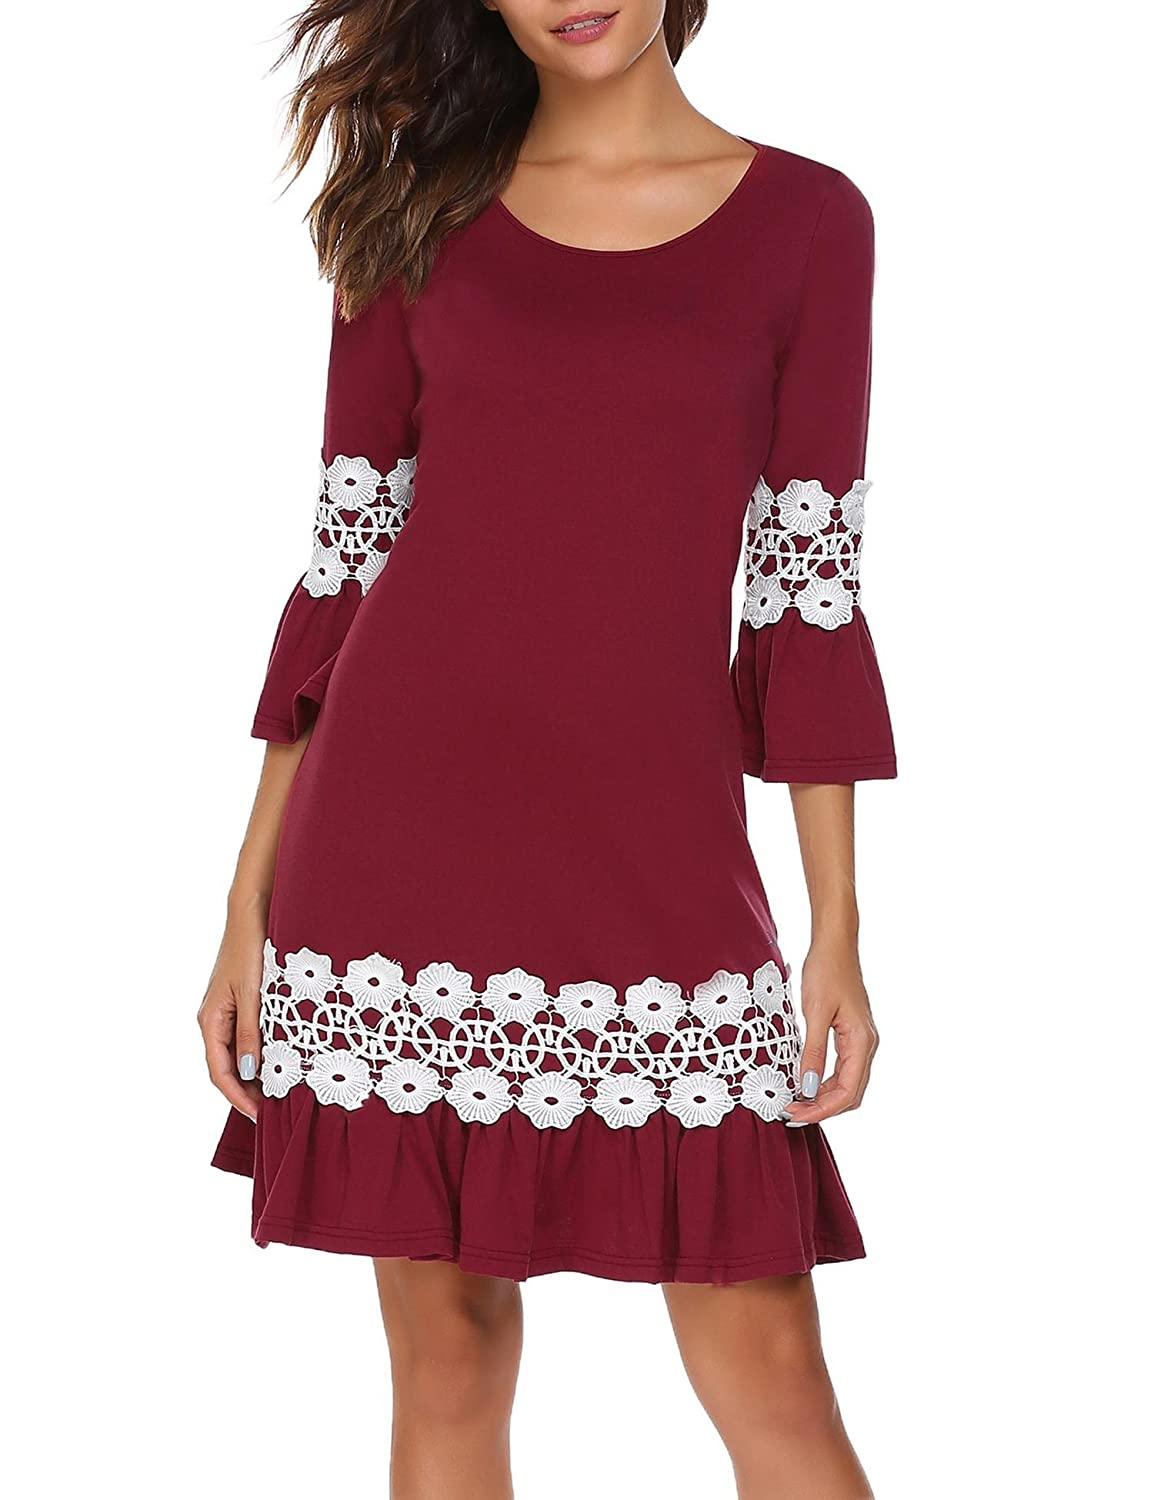 Meaneor Women's 3/4 Sleeve Simple Lace Casual Loose T-Shirt Cocktail Dress MAH017973